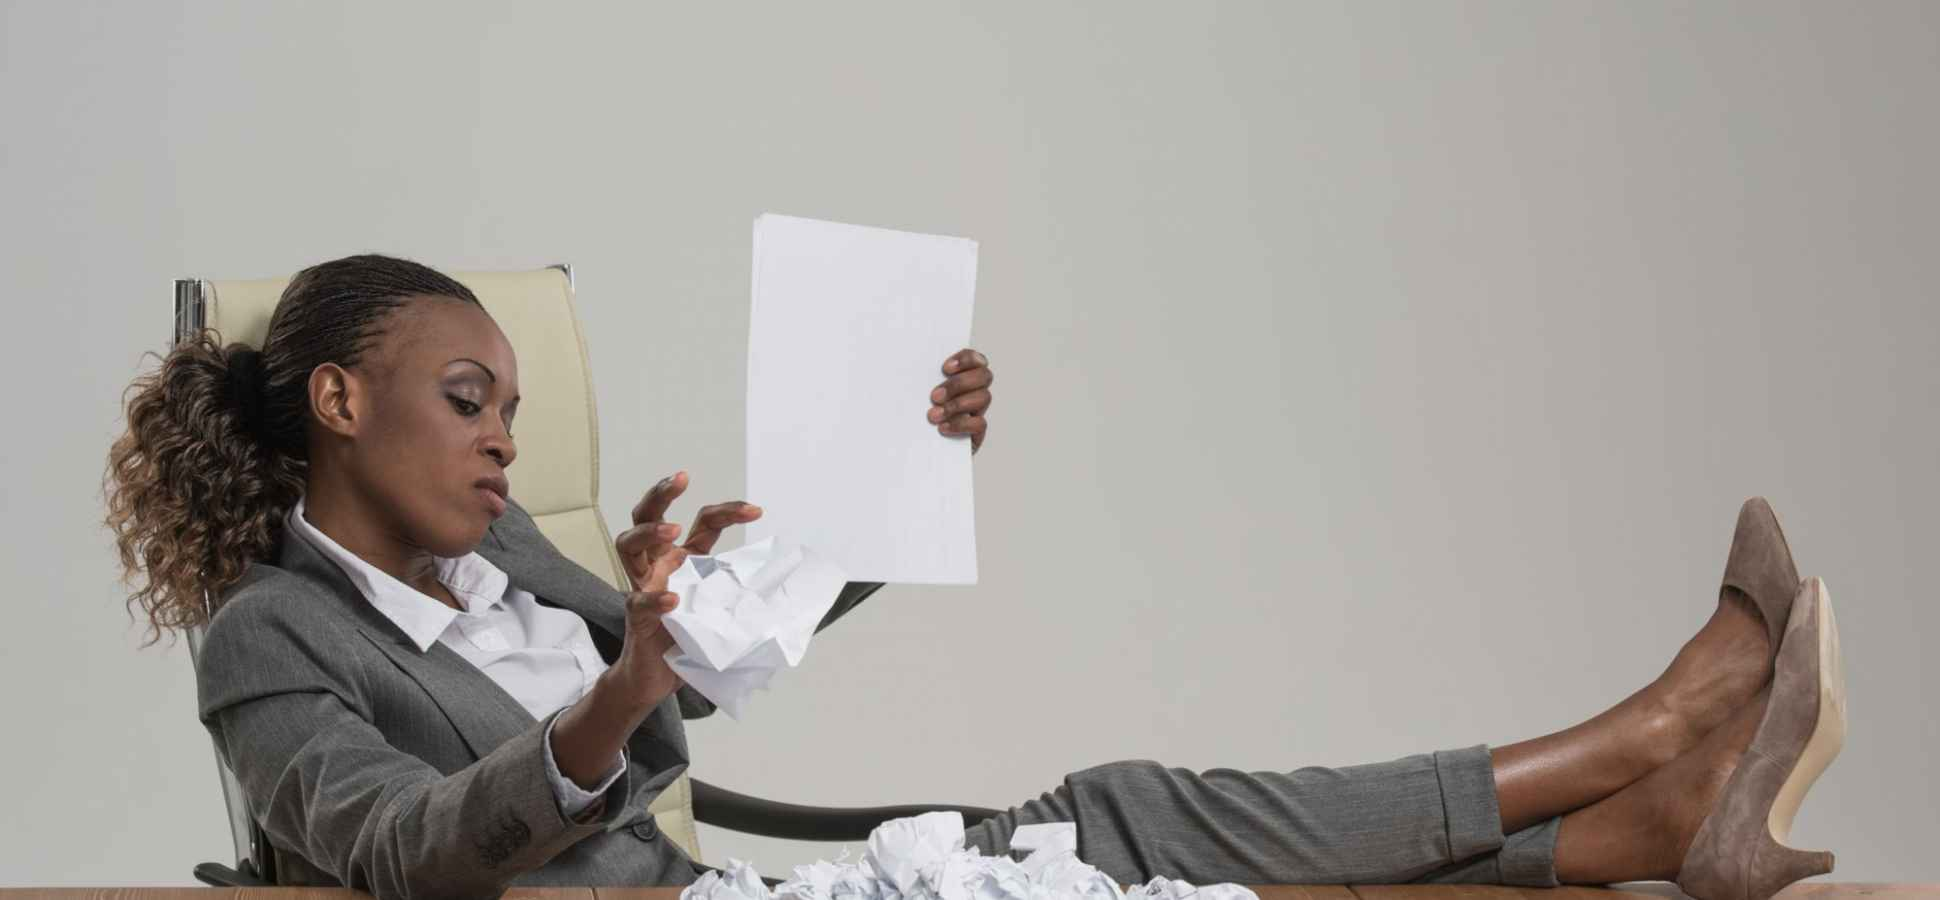 If Your Resume Isn't 6-Second Worthy, Studies Reveal Recruiters Will Toss It